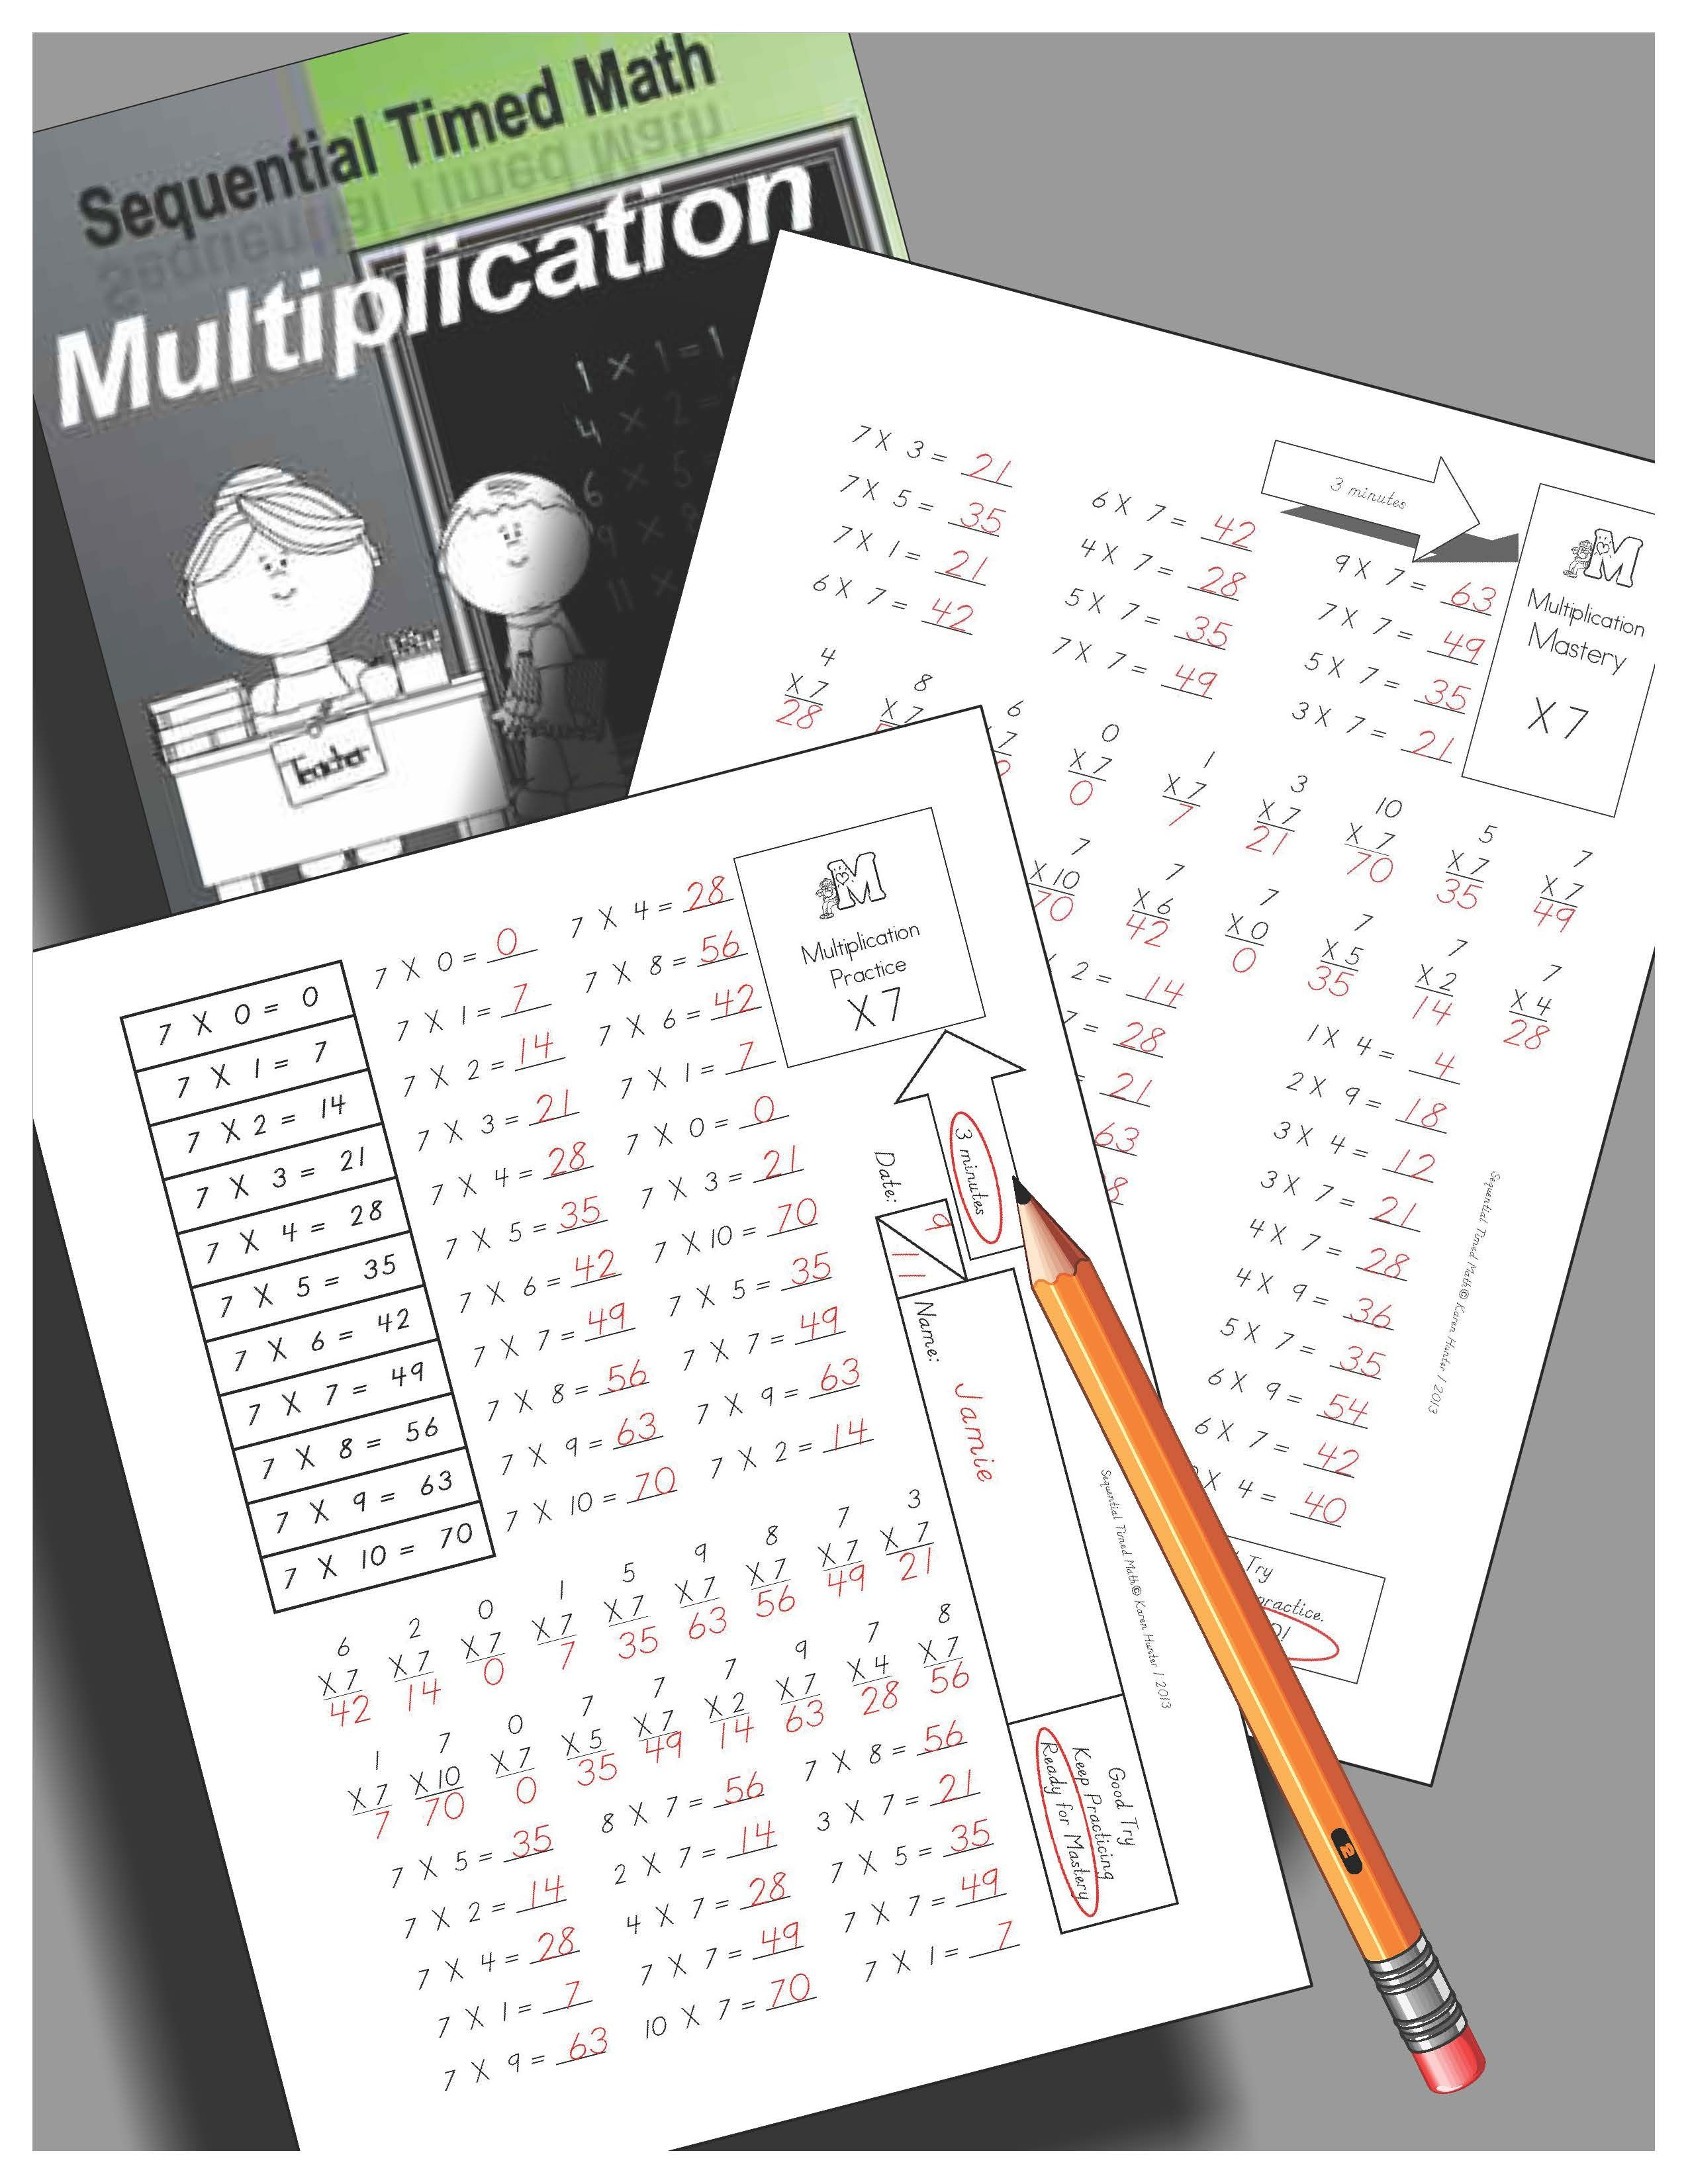 Sequential Timed Math Multiplication Facts Fluency